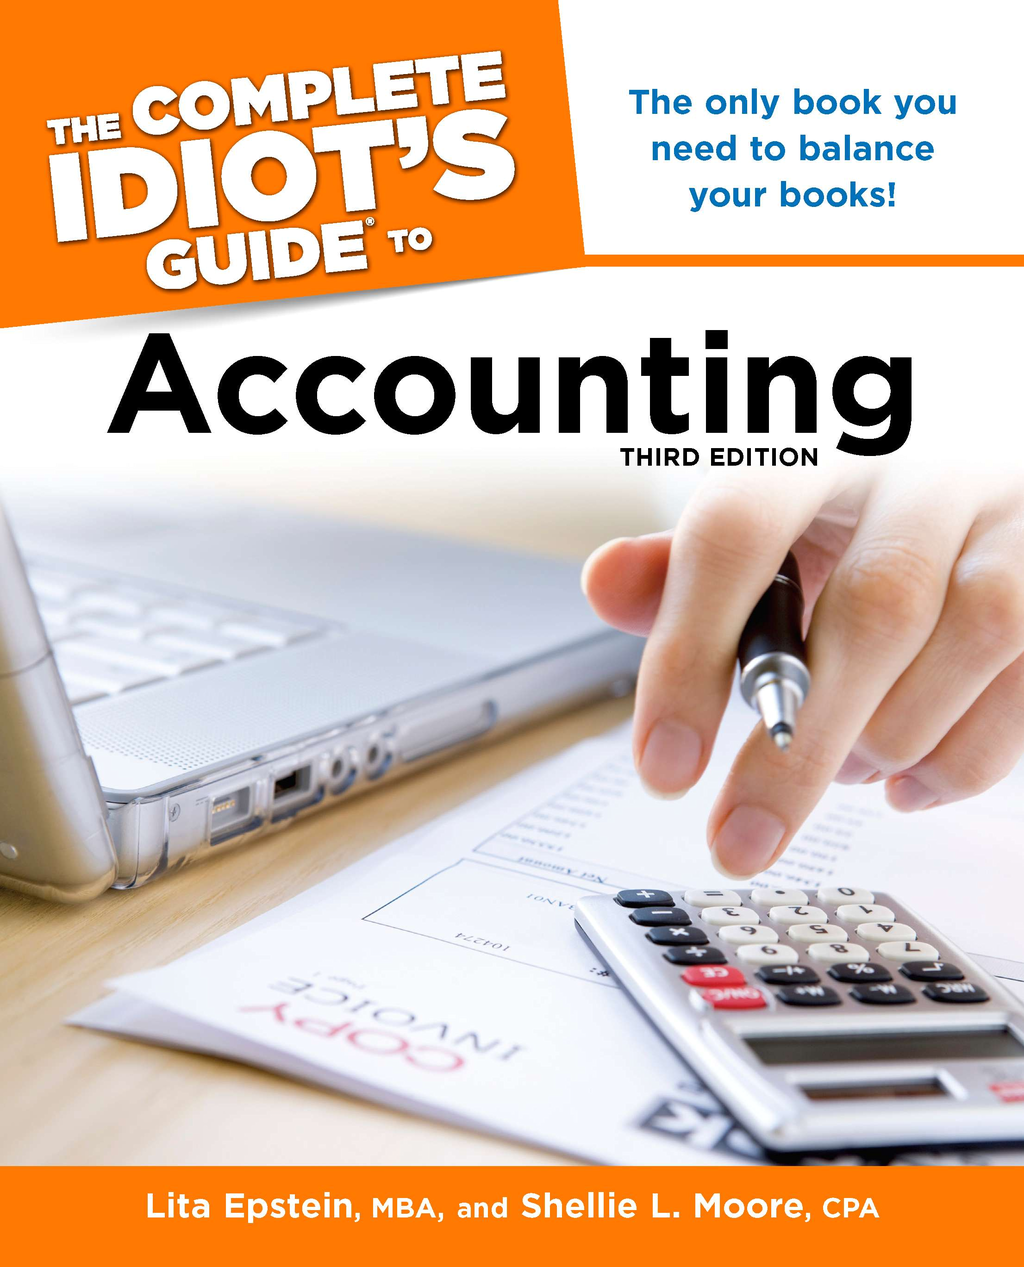 The Complete Idiot's Guide to Accounting, 3rd Edition By: Lita Epstein,Shellie Moore